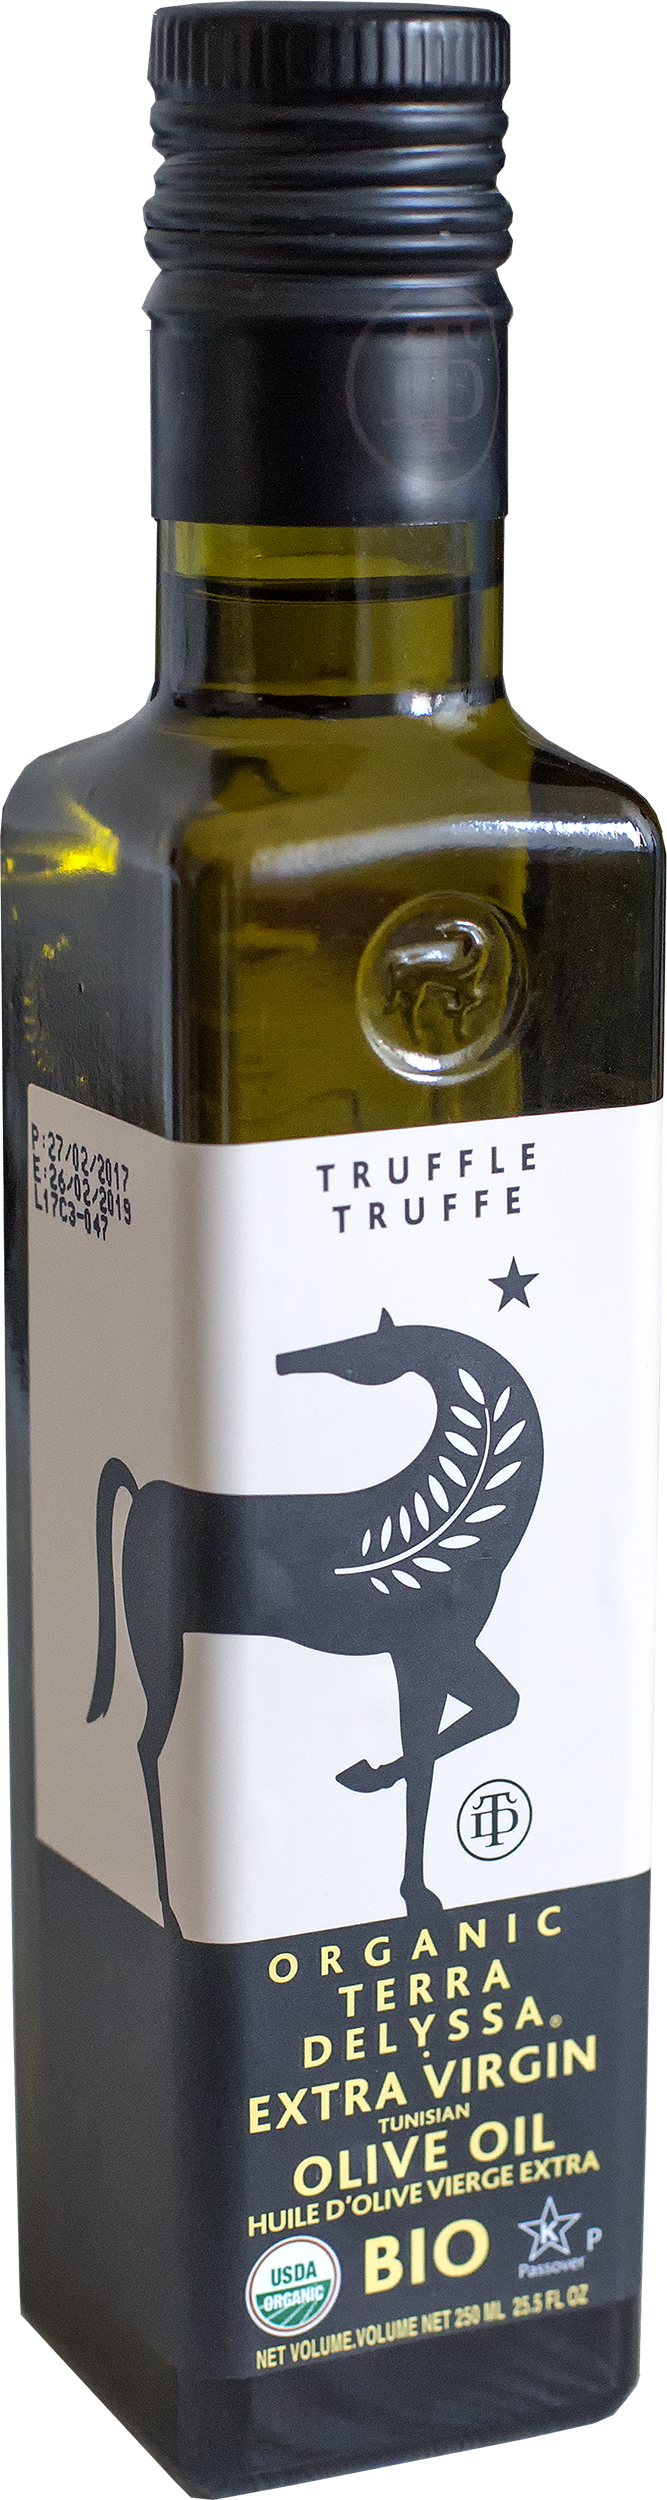 Organic infused with truffle 250ml